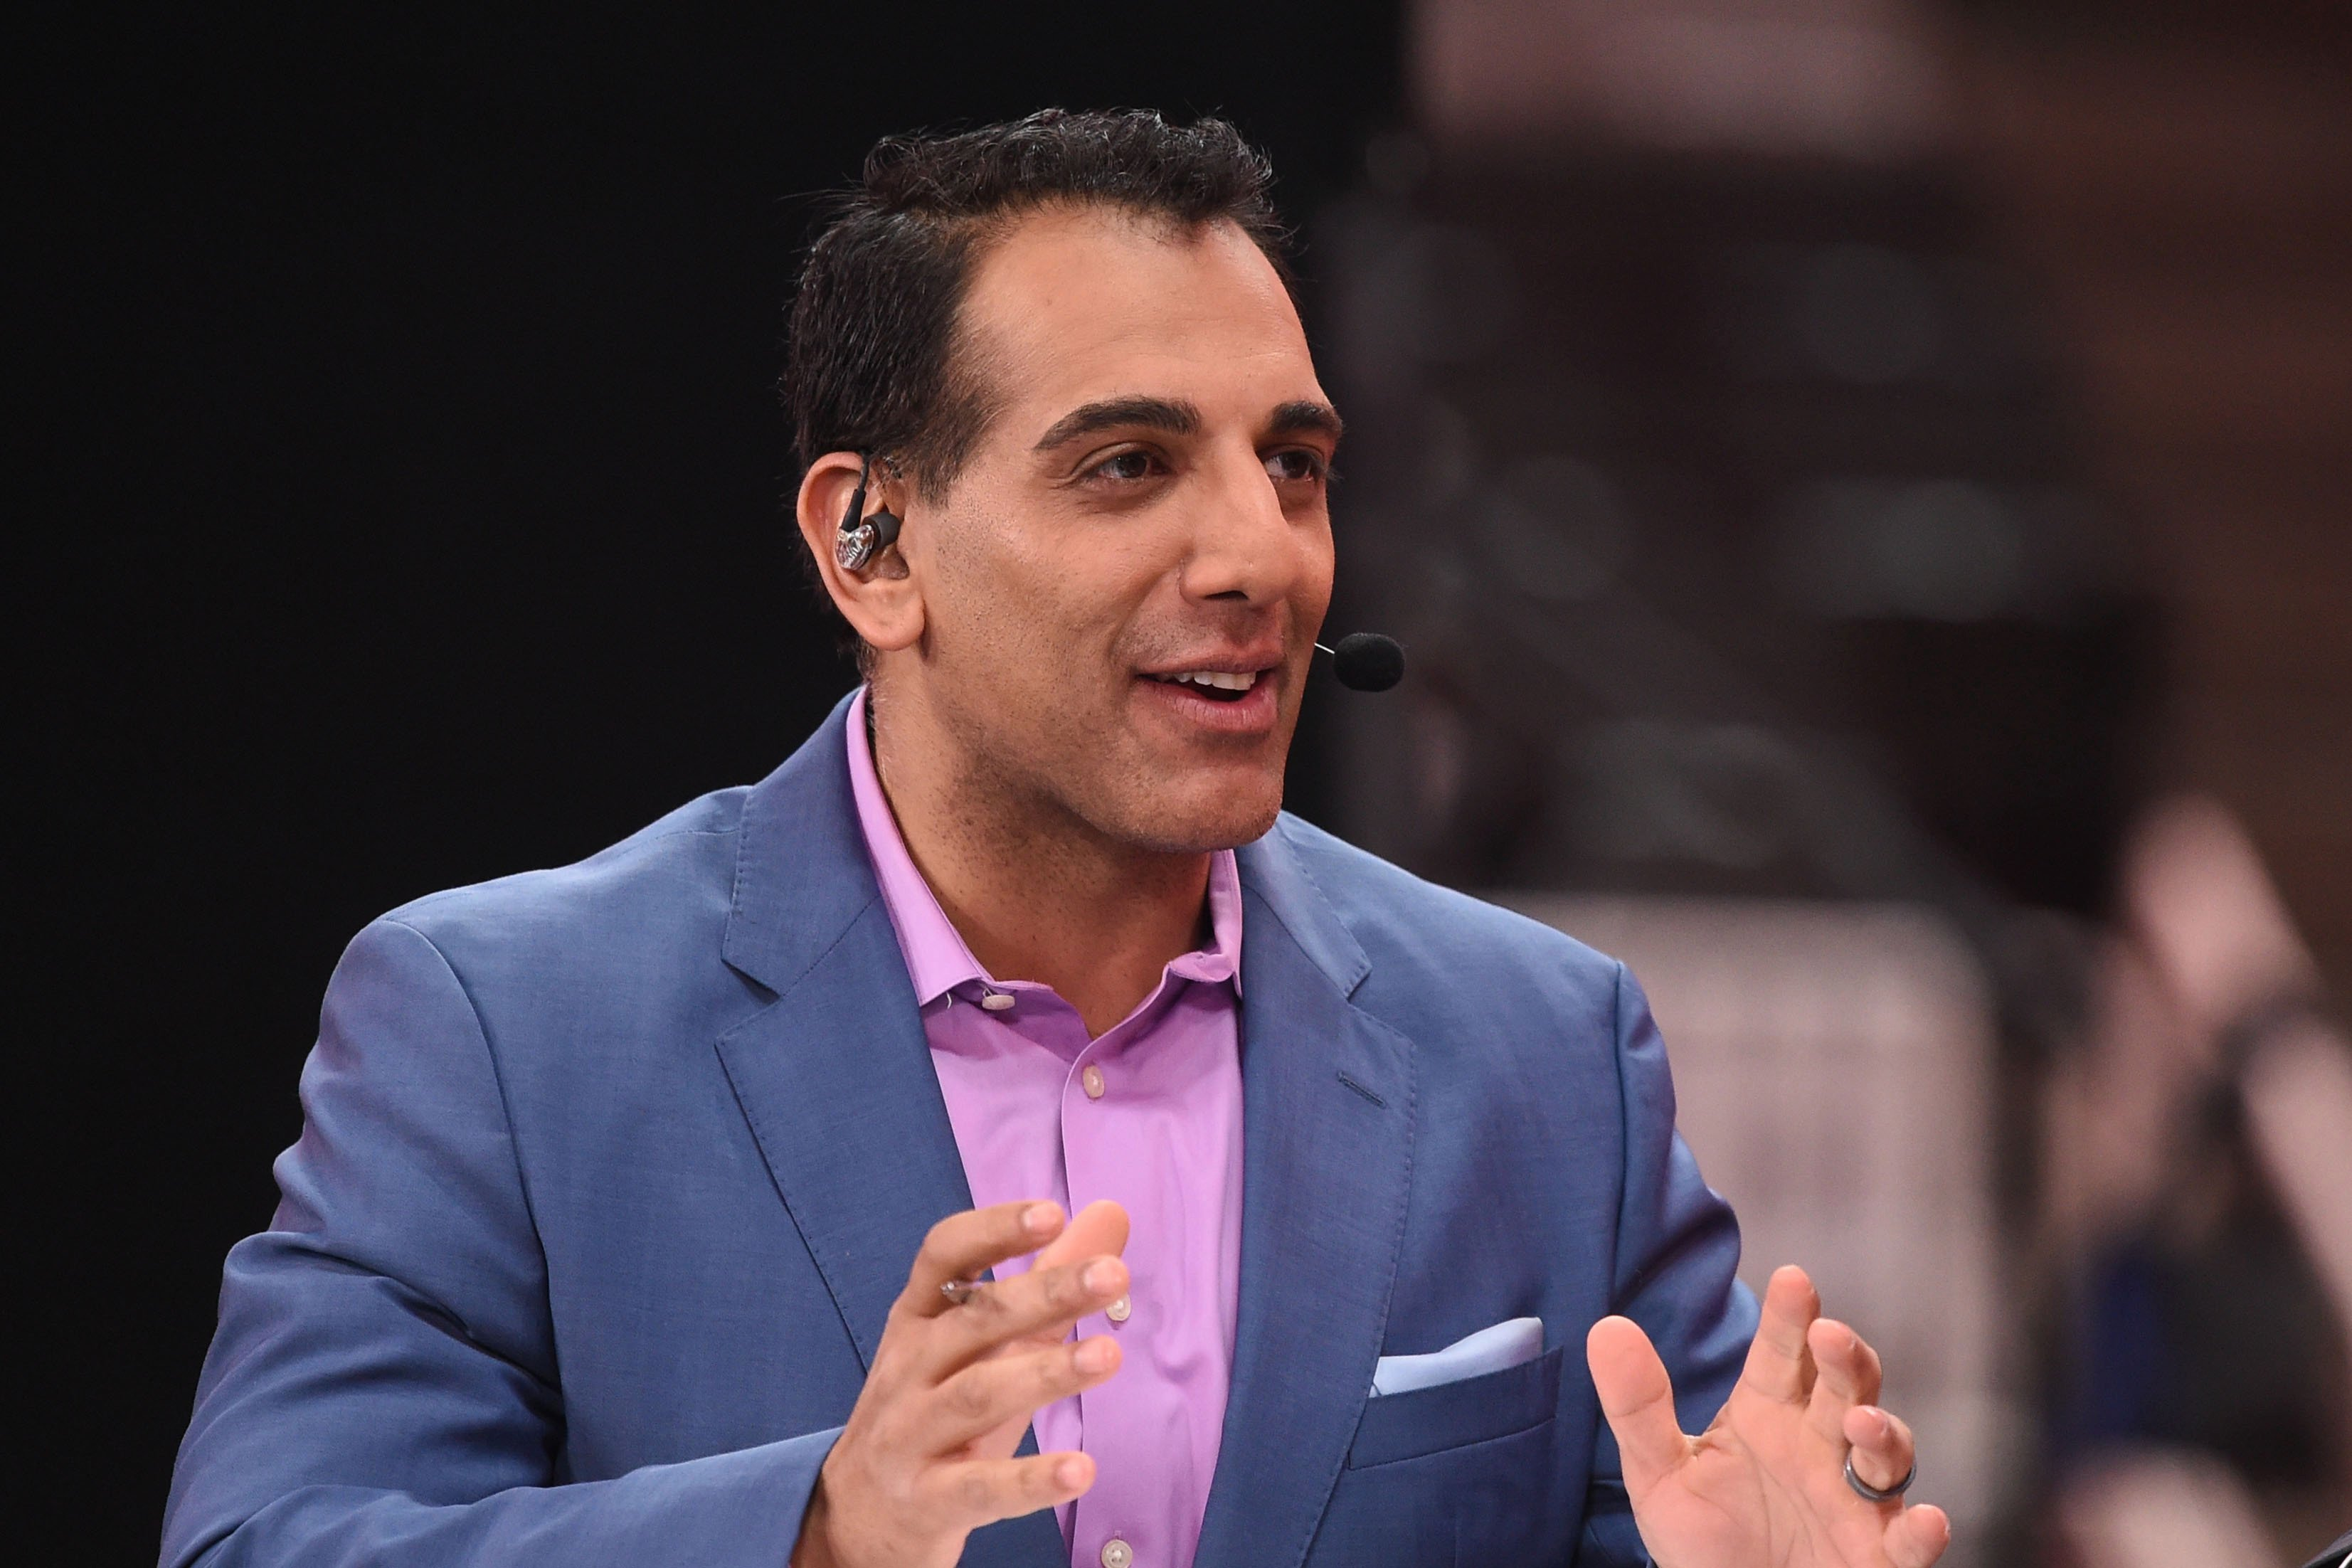 Adnan Virk's one relief about his very public ESPN firing